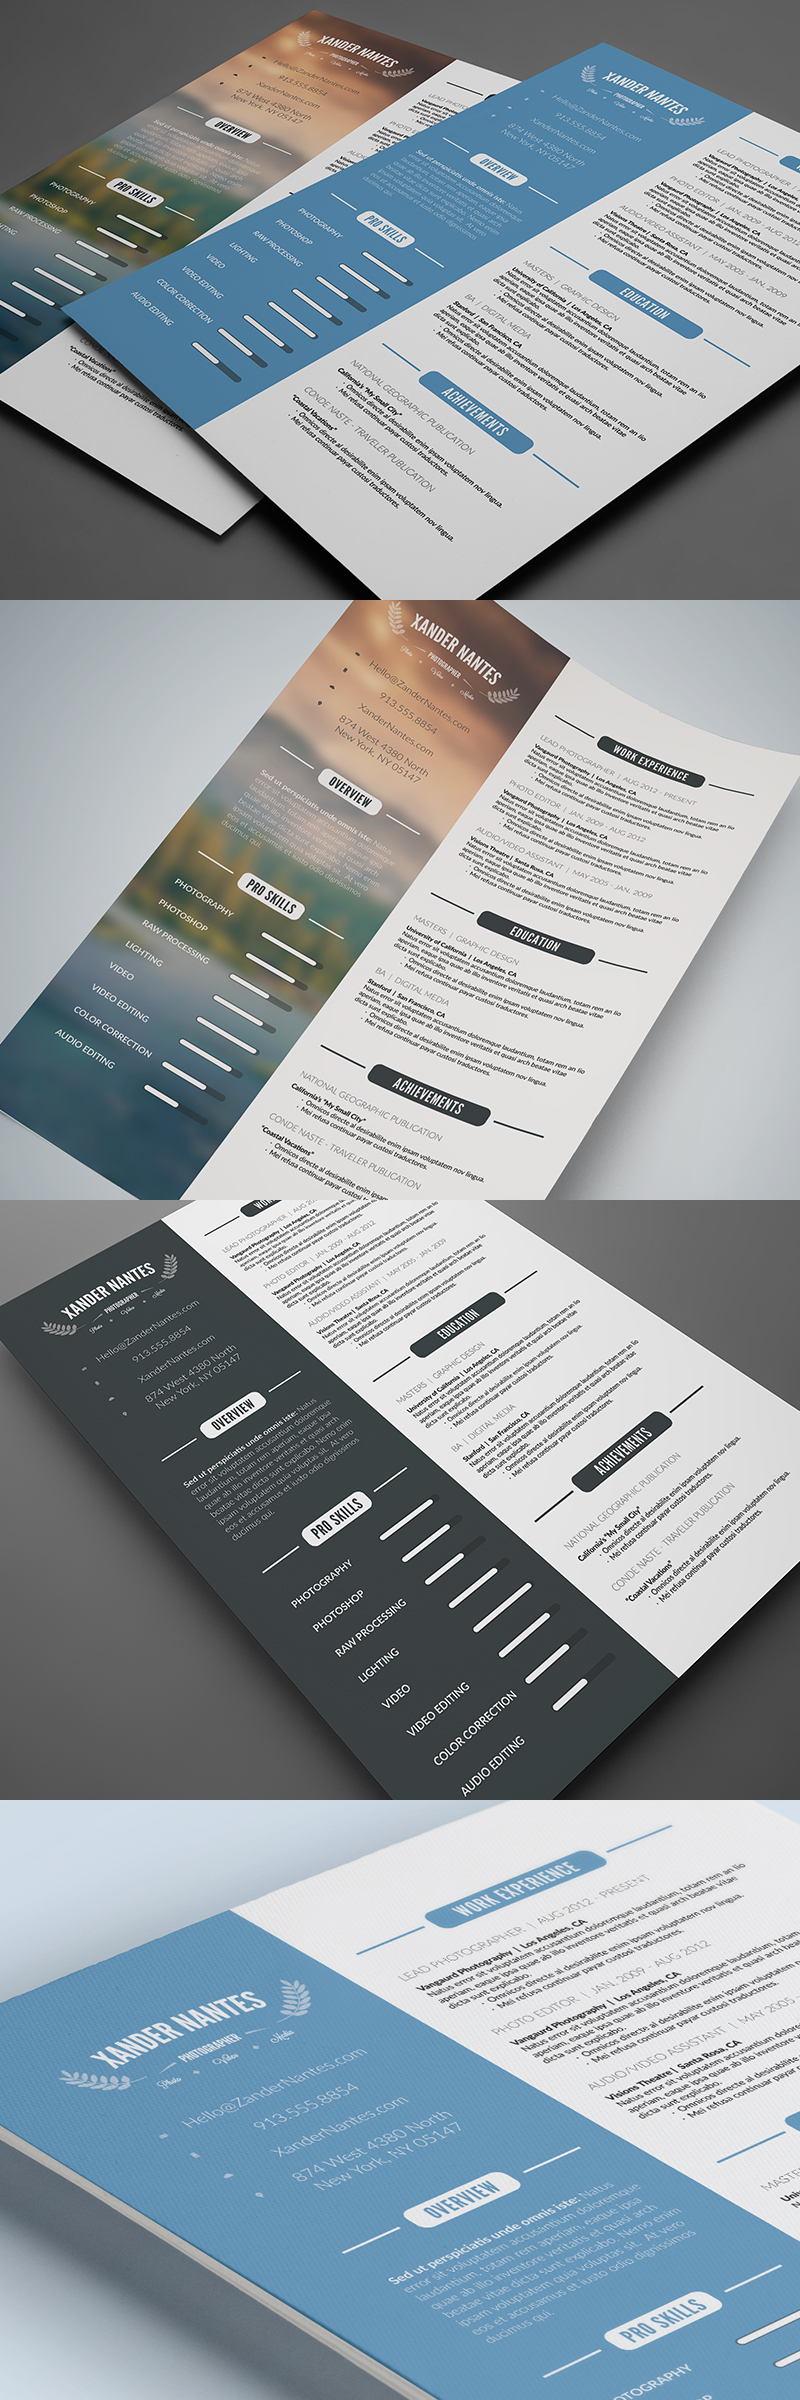 Clean Resume Template Photoshop Psd Instant Download Photographer Designer Job Business Cv